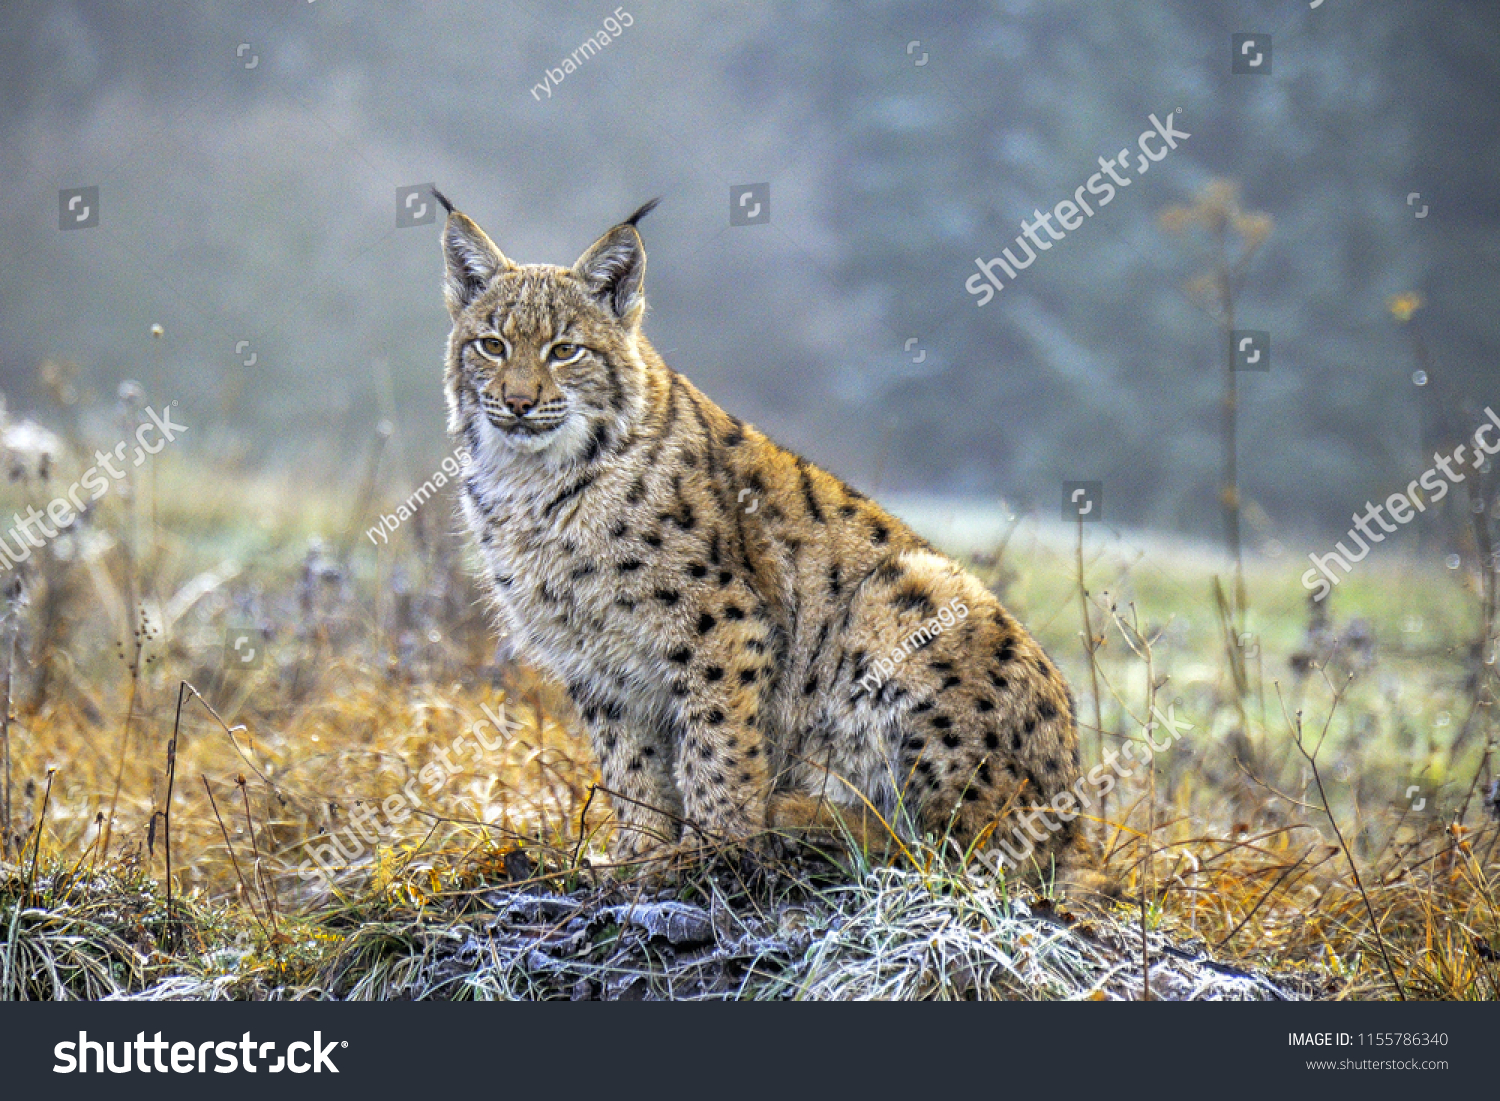 Wild Eurasian lynx (Lynx lynx) in its natural environment deep in the forests. Chilly autumn weather. Wild and endangered predator. Slovakia.